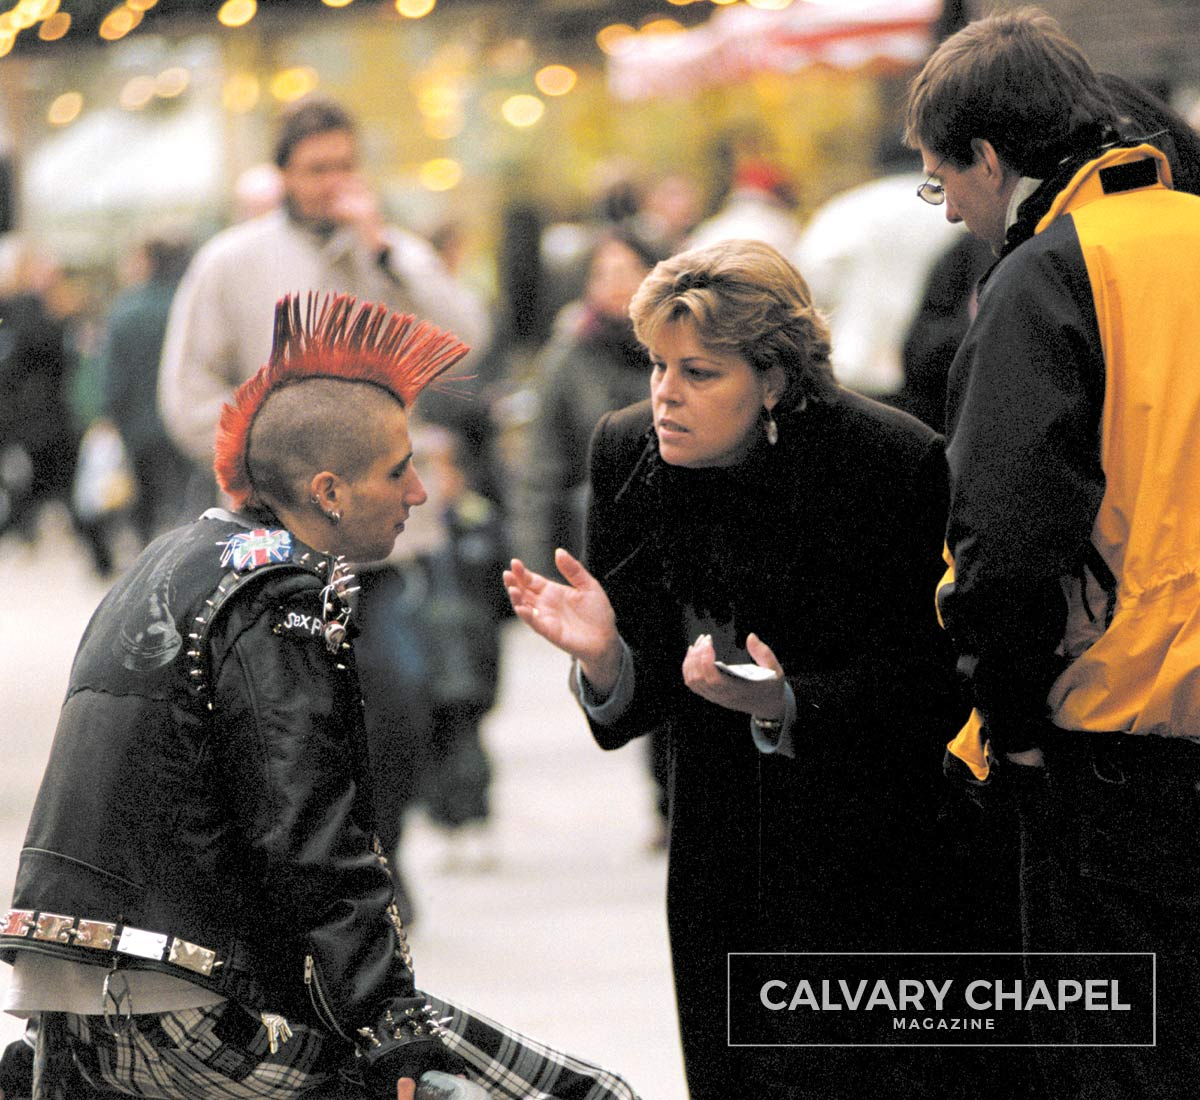 Sharing the Gospel with a man with a mohawk